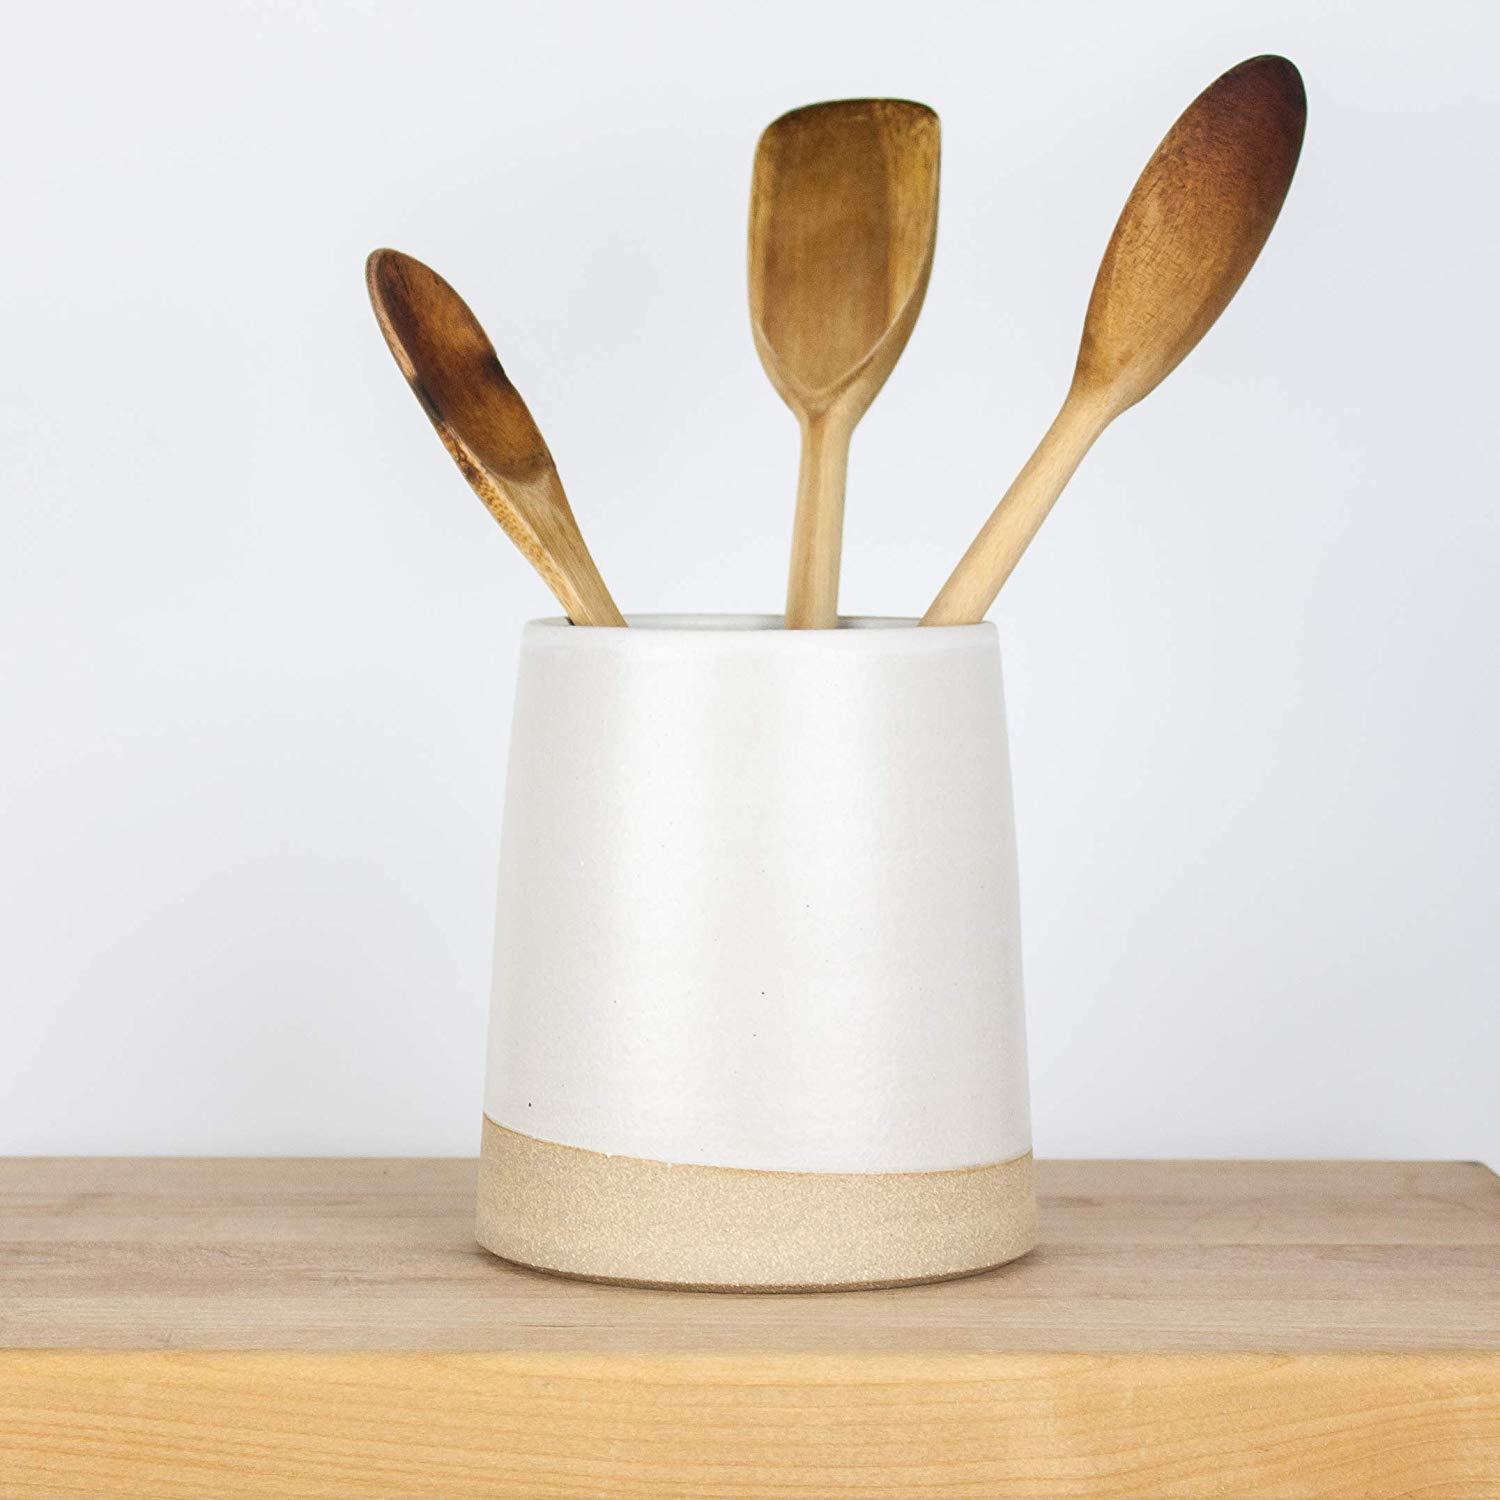 Minimal Modern White Ceramic Utensil Holder By Barombi Studios | Utensil  Crock | Utensil Caddy